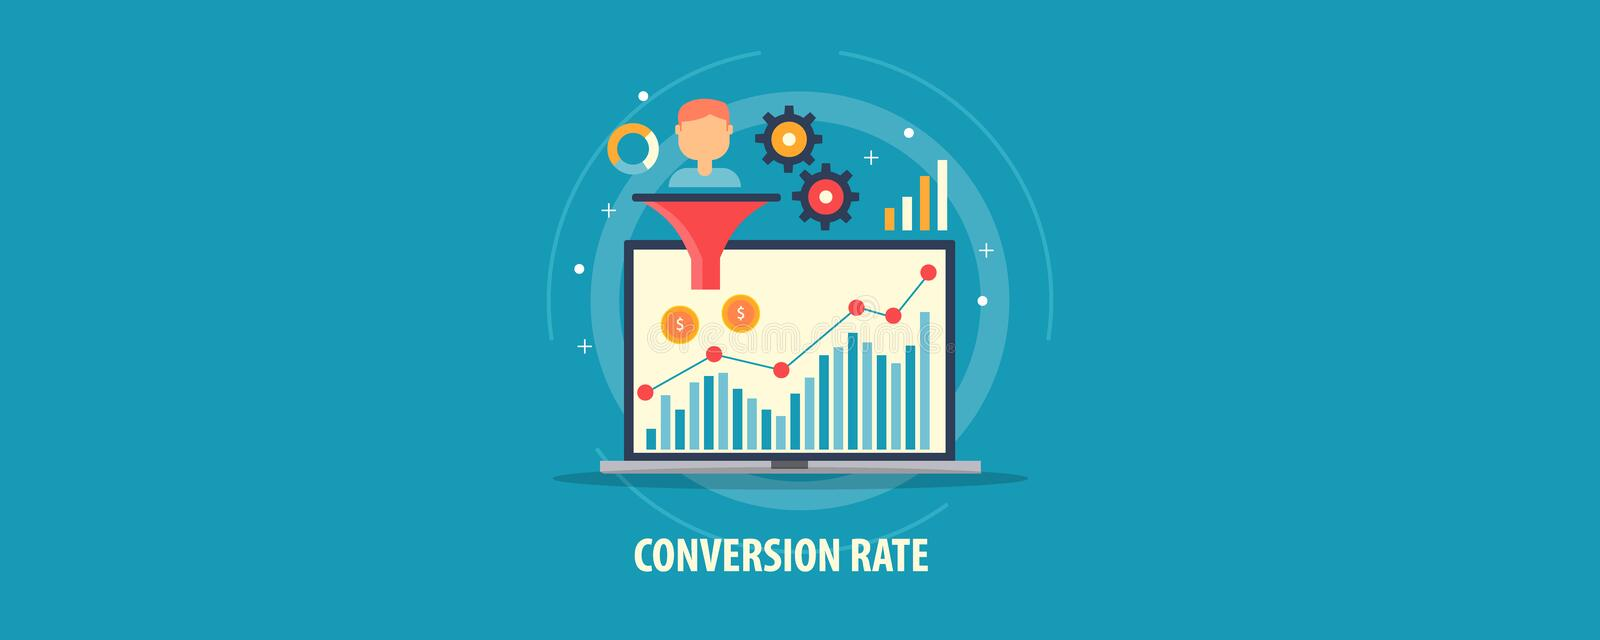 Digital marketing analysis - customer conversion - sales funnel - conversion rate optimization concept. Flat design vector banner. royalty free illustration